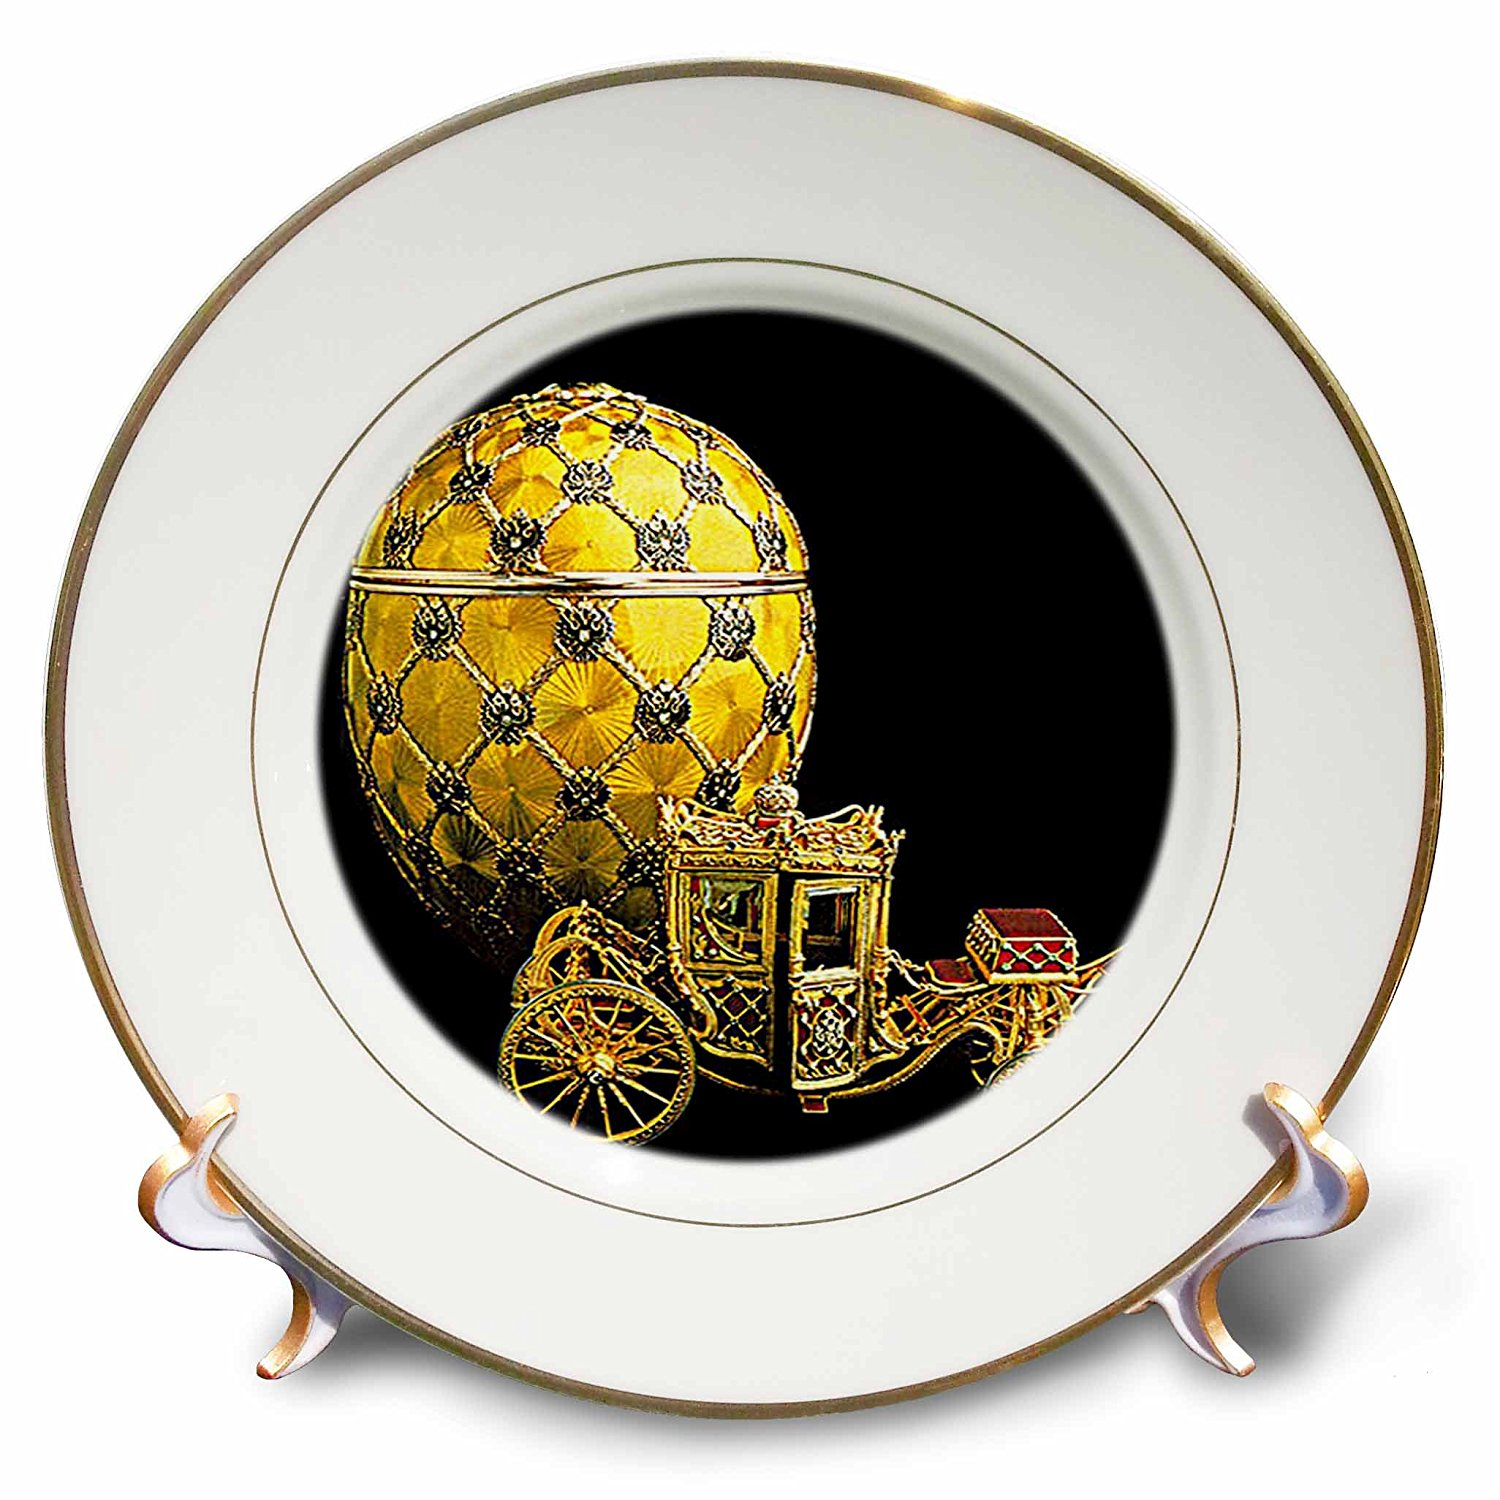 Faberge® Eggs - Picturing Faberge® Egg Coronation - 8 inch Porcelain Plate (cp_568_1)